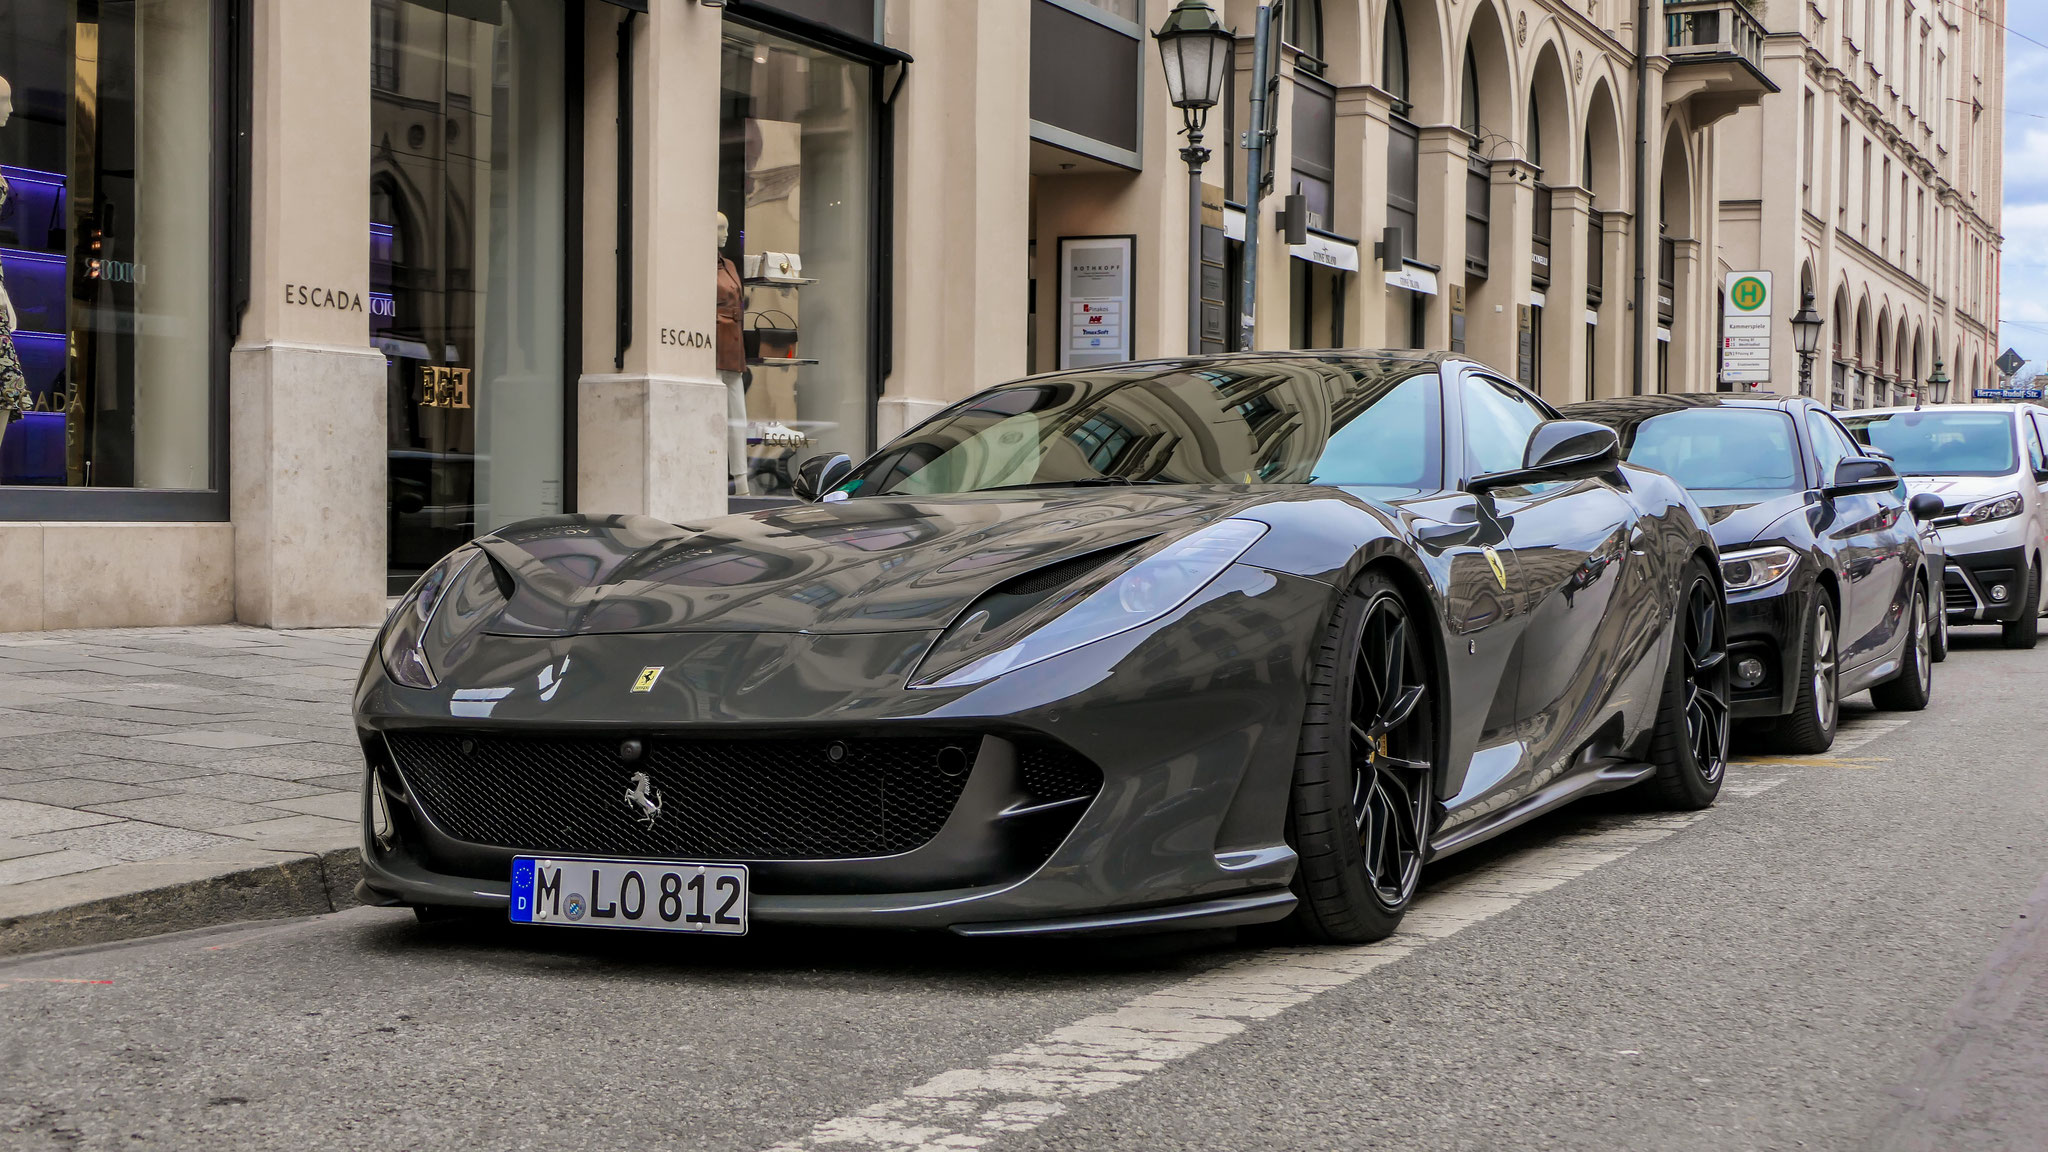 Ferrari 812 Superfast - M-LO-812